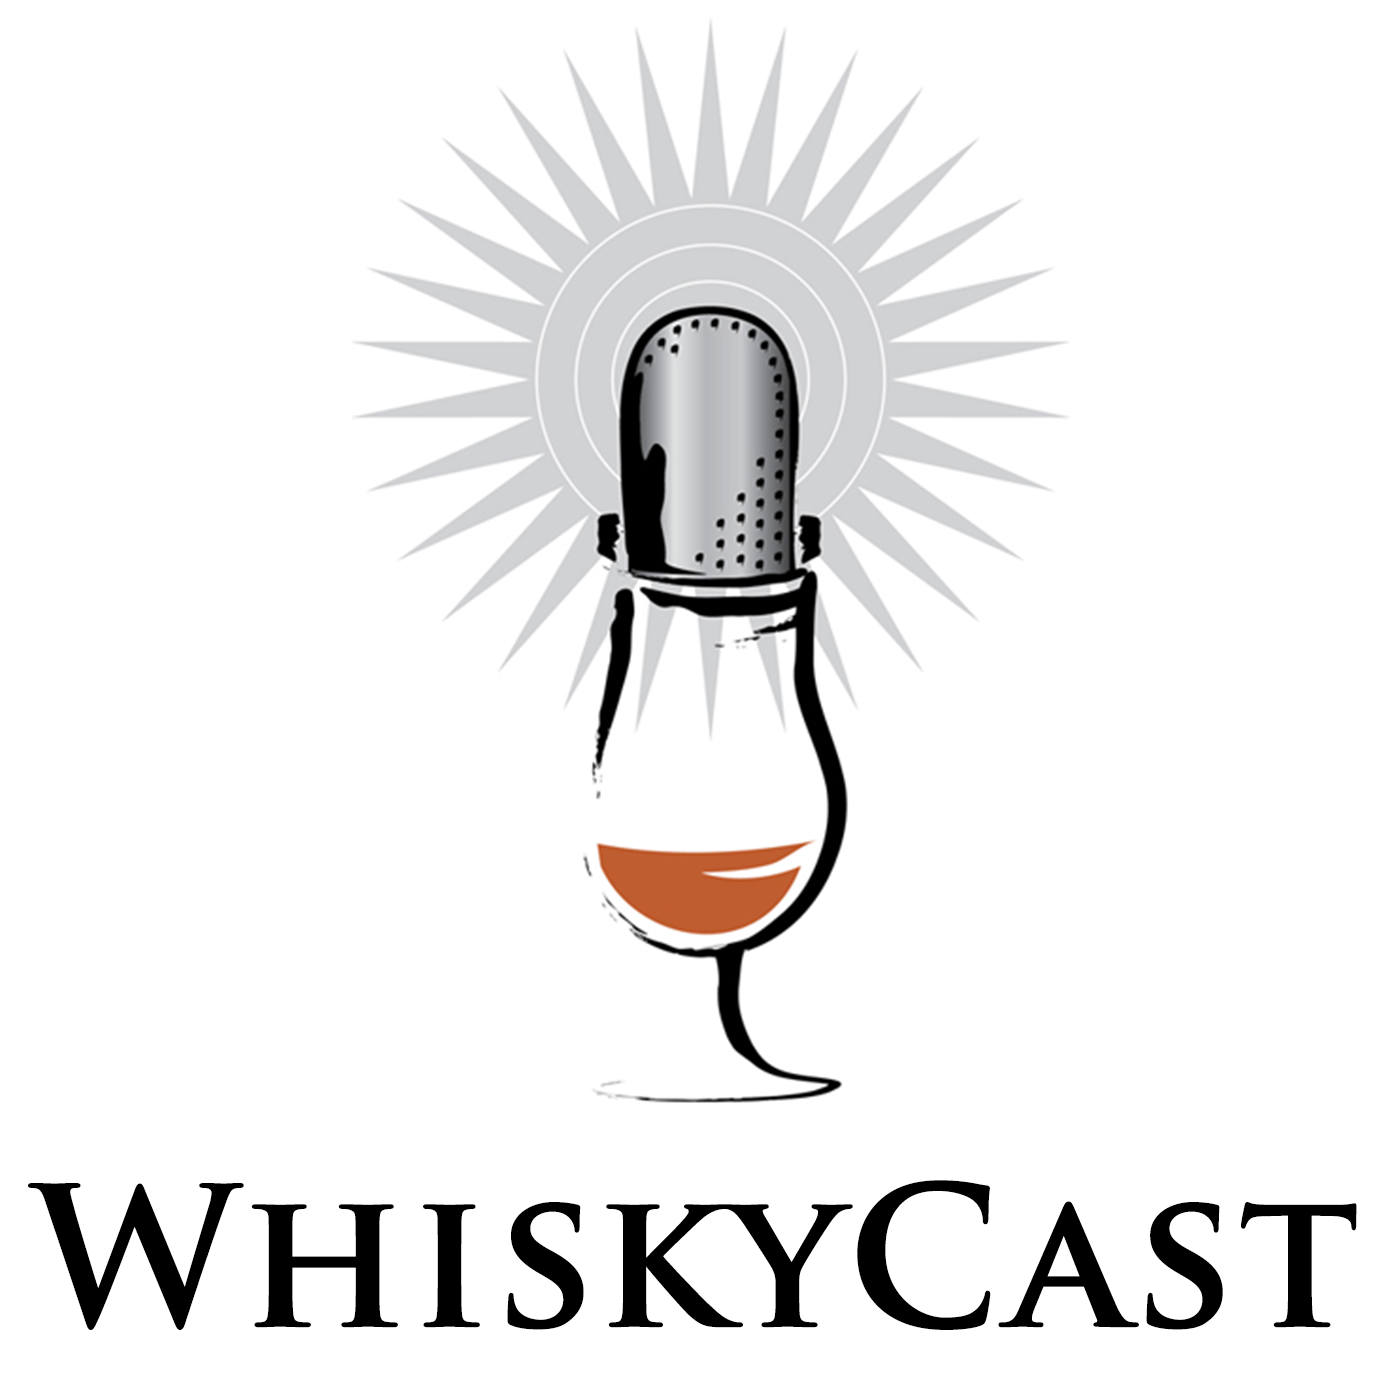 WhiskyCast Episode 466: February 15, 2014